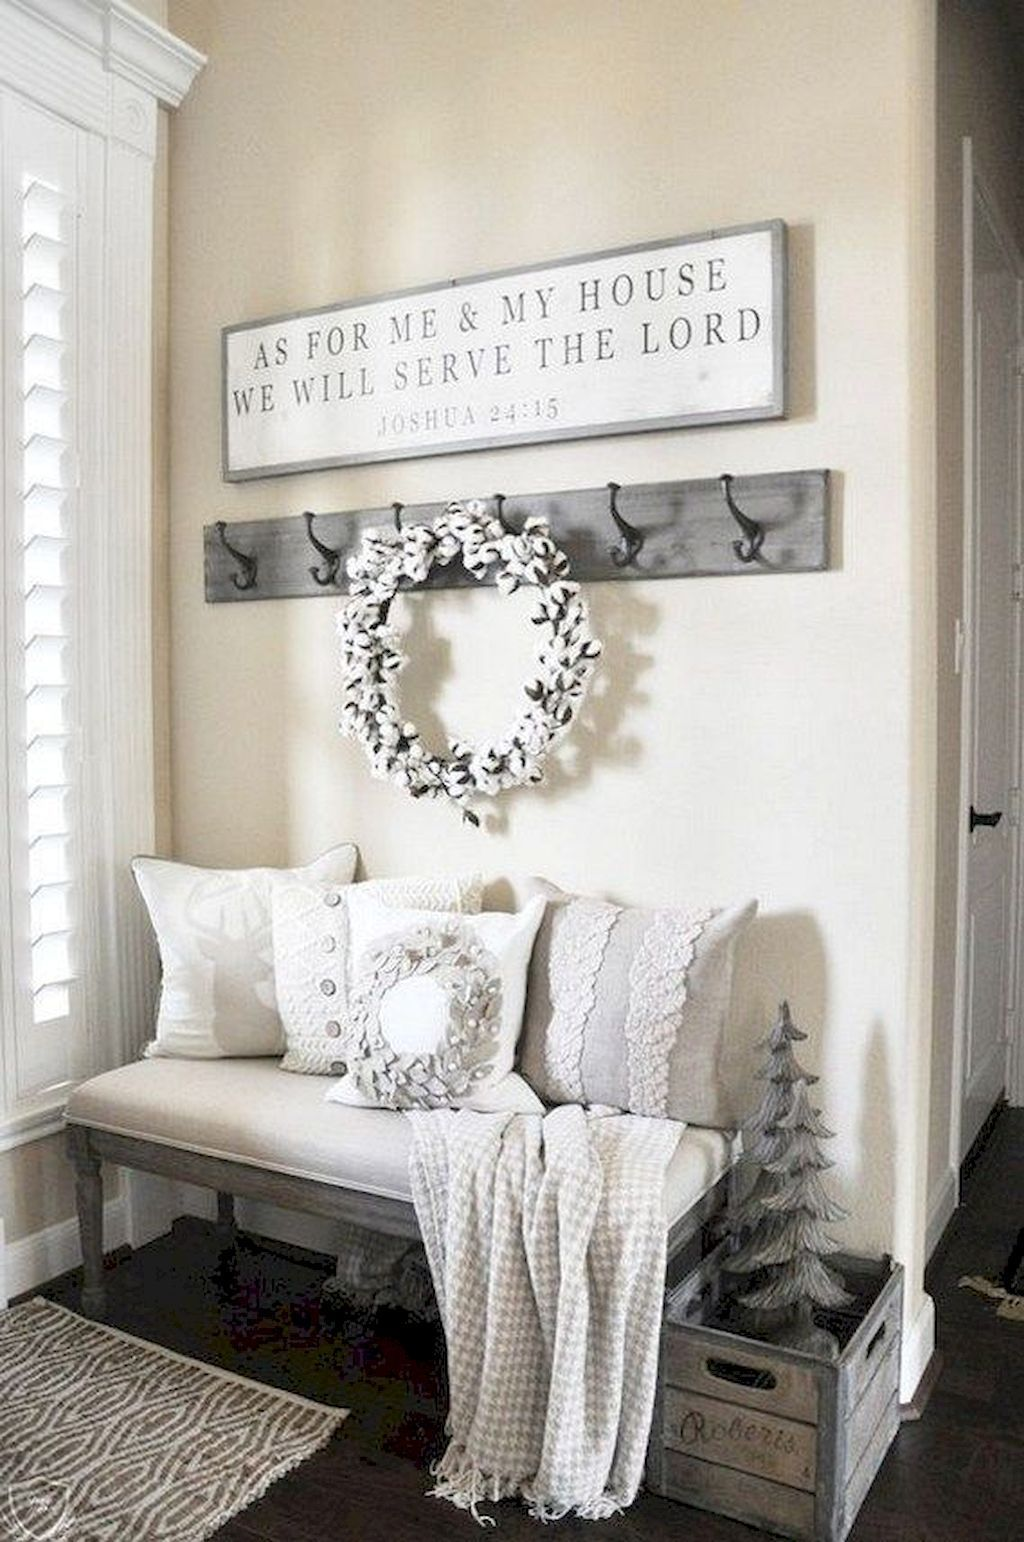 Inspiring DIY Farmhouse Home Decor Ideas 30